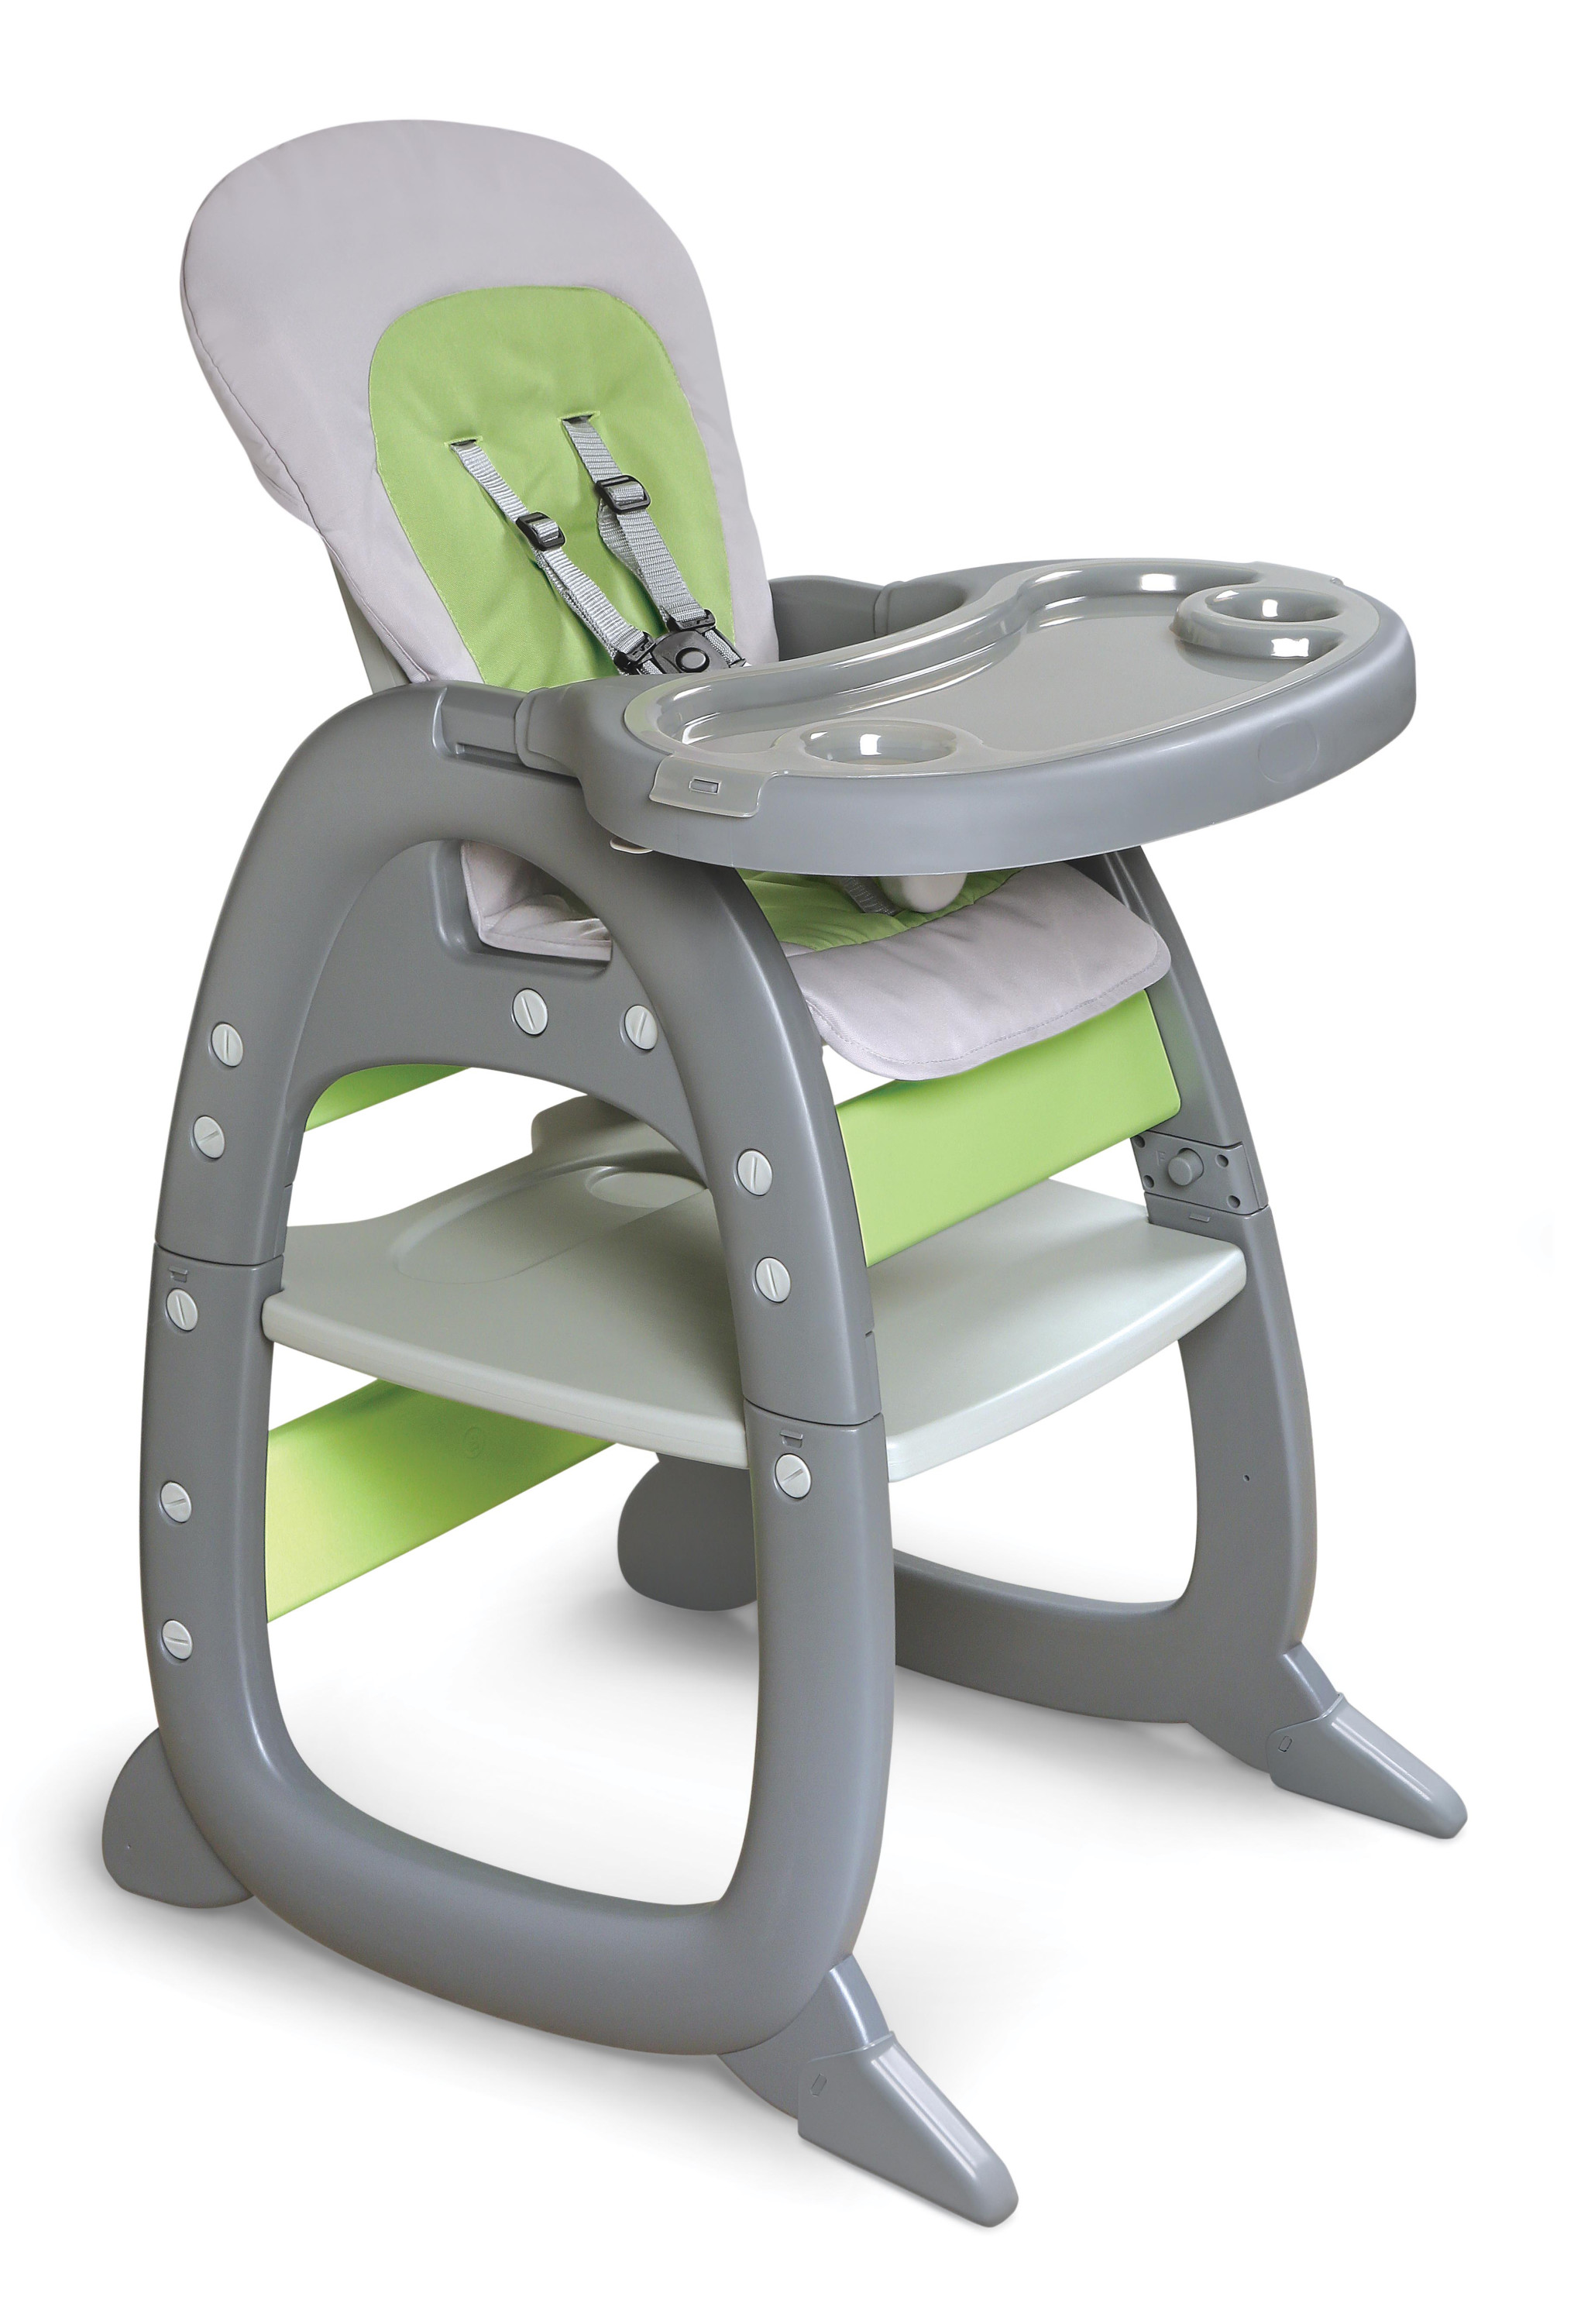 badger basket high chair best bean bag chairs for adults envee ii baby with playtable